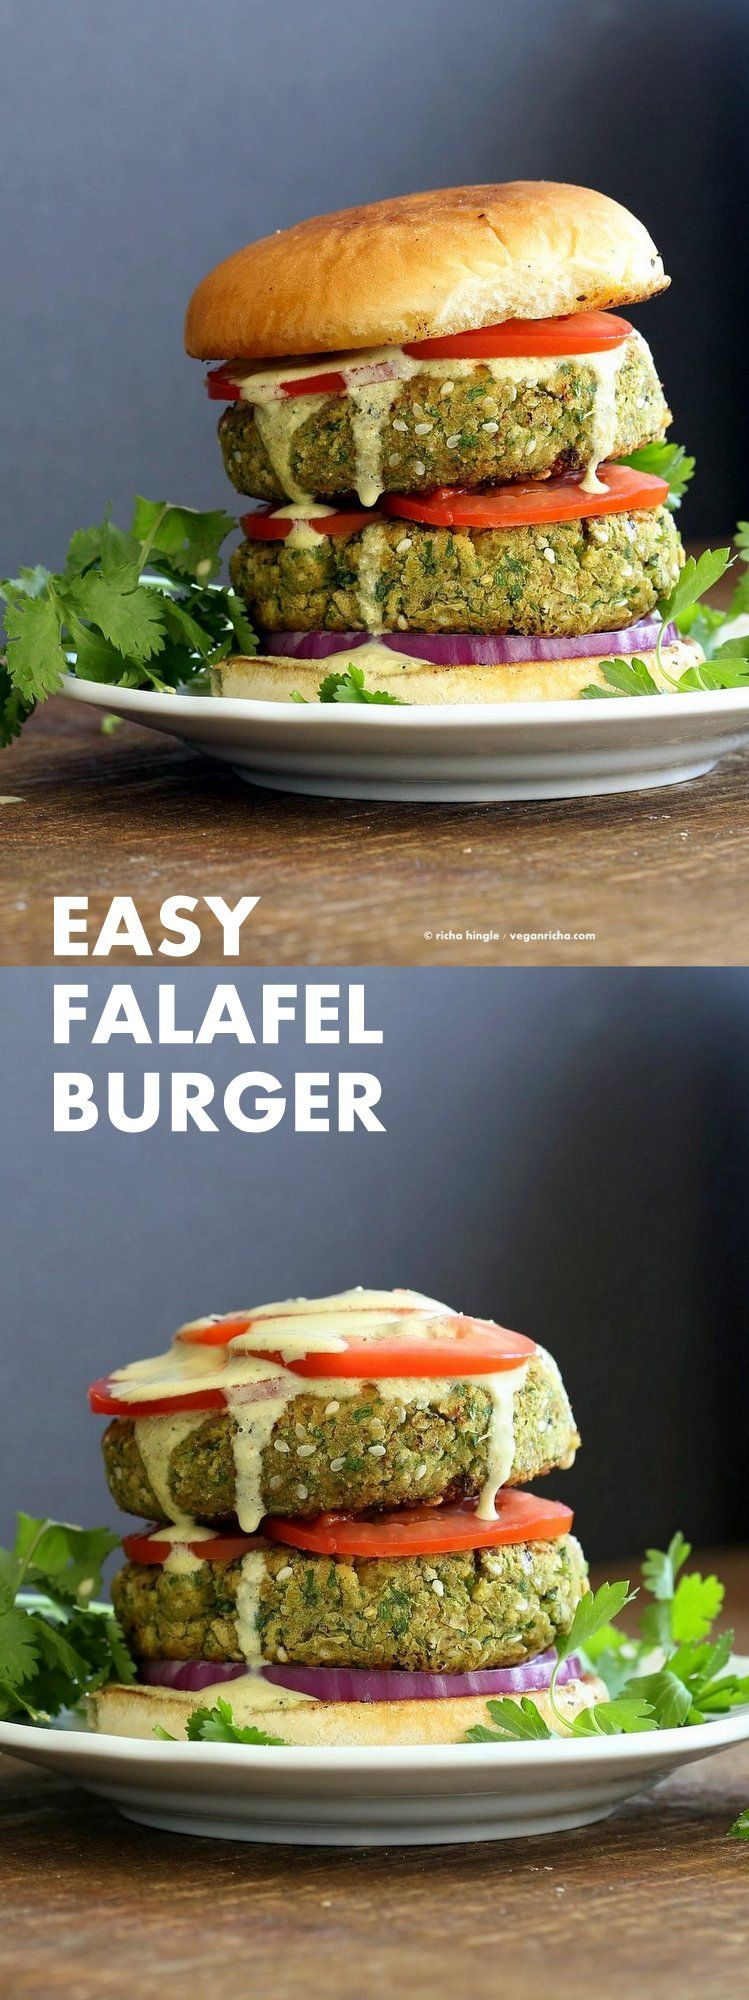 Easy Vegan Falafel Burger Easy Vegan Falafel Burger. Chickpea patties with 5 minute tahini dressing, tomatoes, onions, pickles make for a filling and flavorful burger. Can be made |